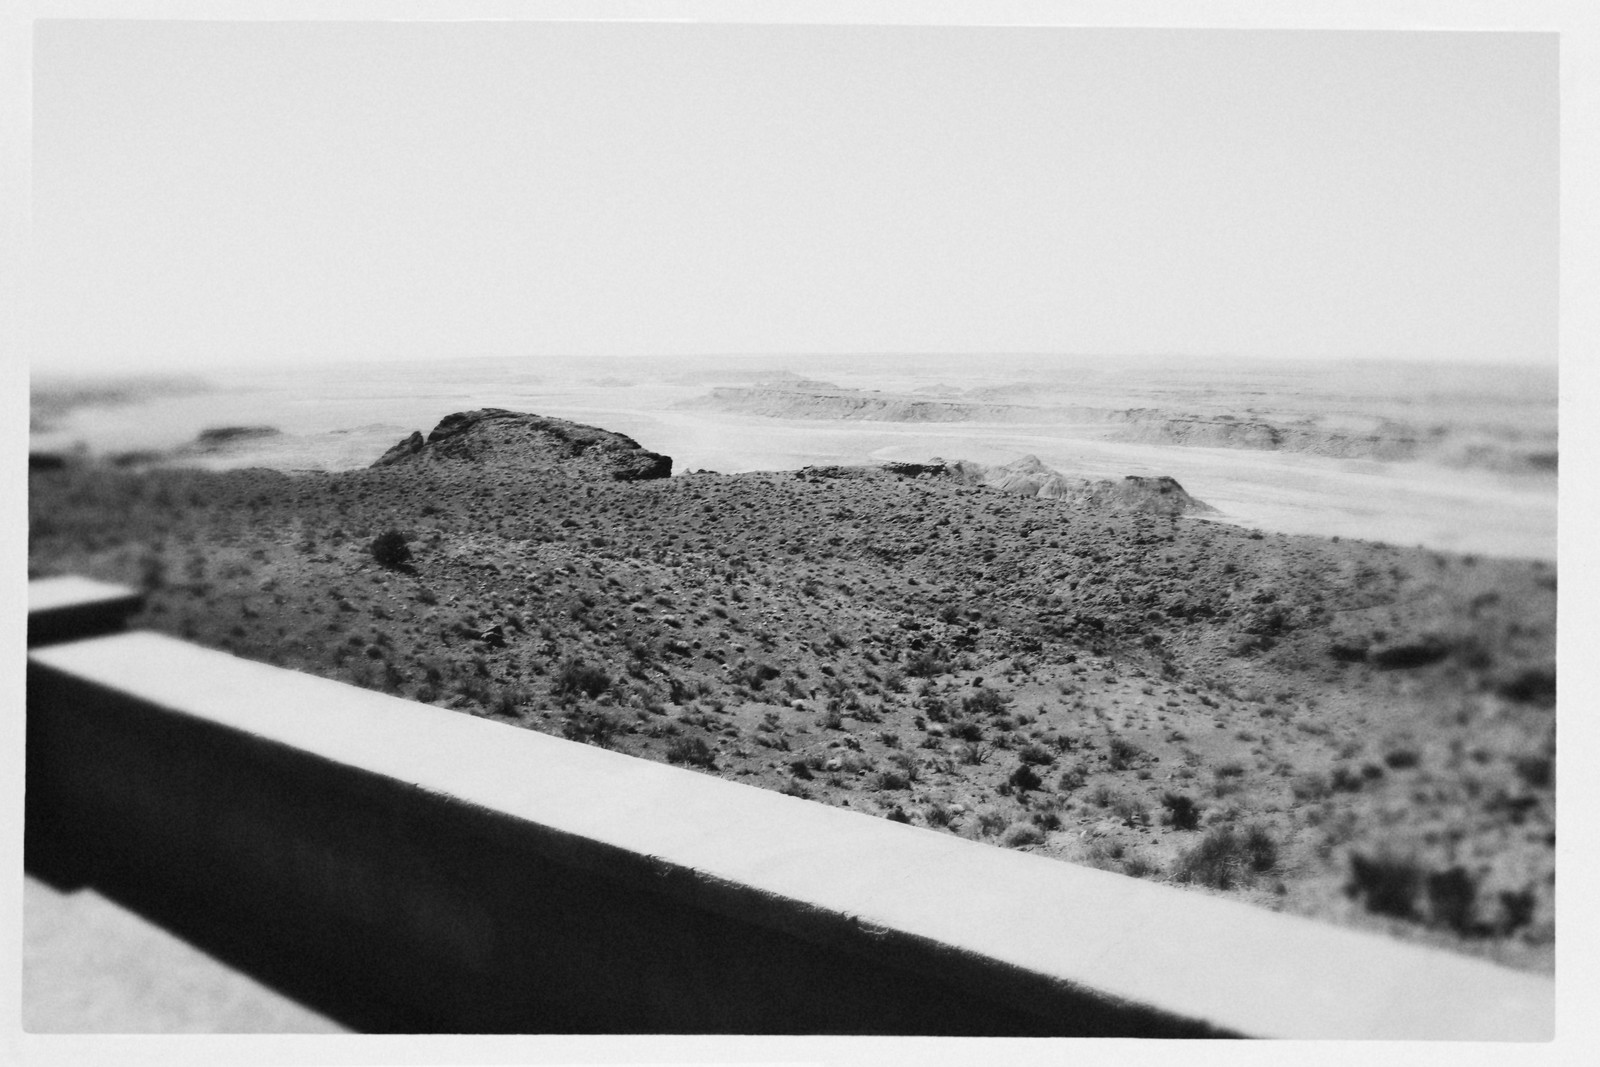 View of the Painted Desert/Petrified Forest